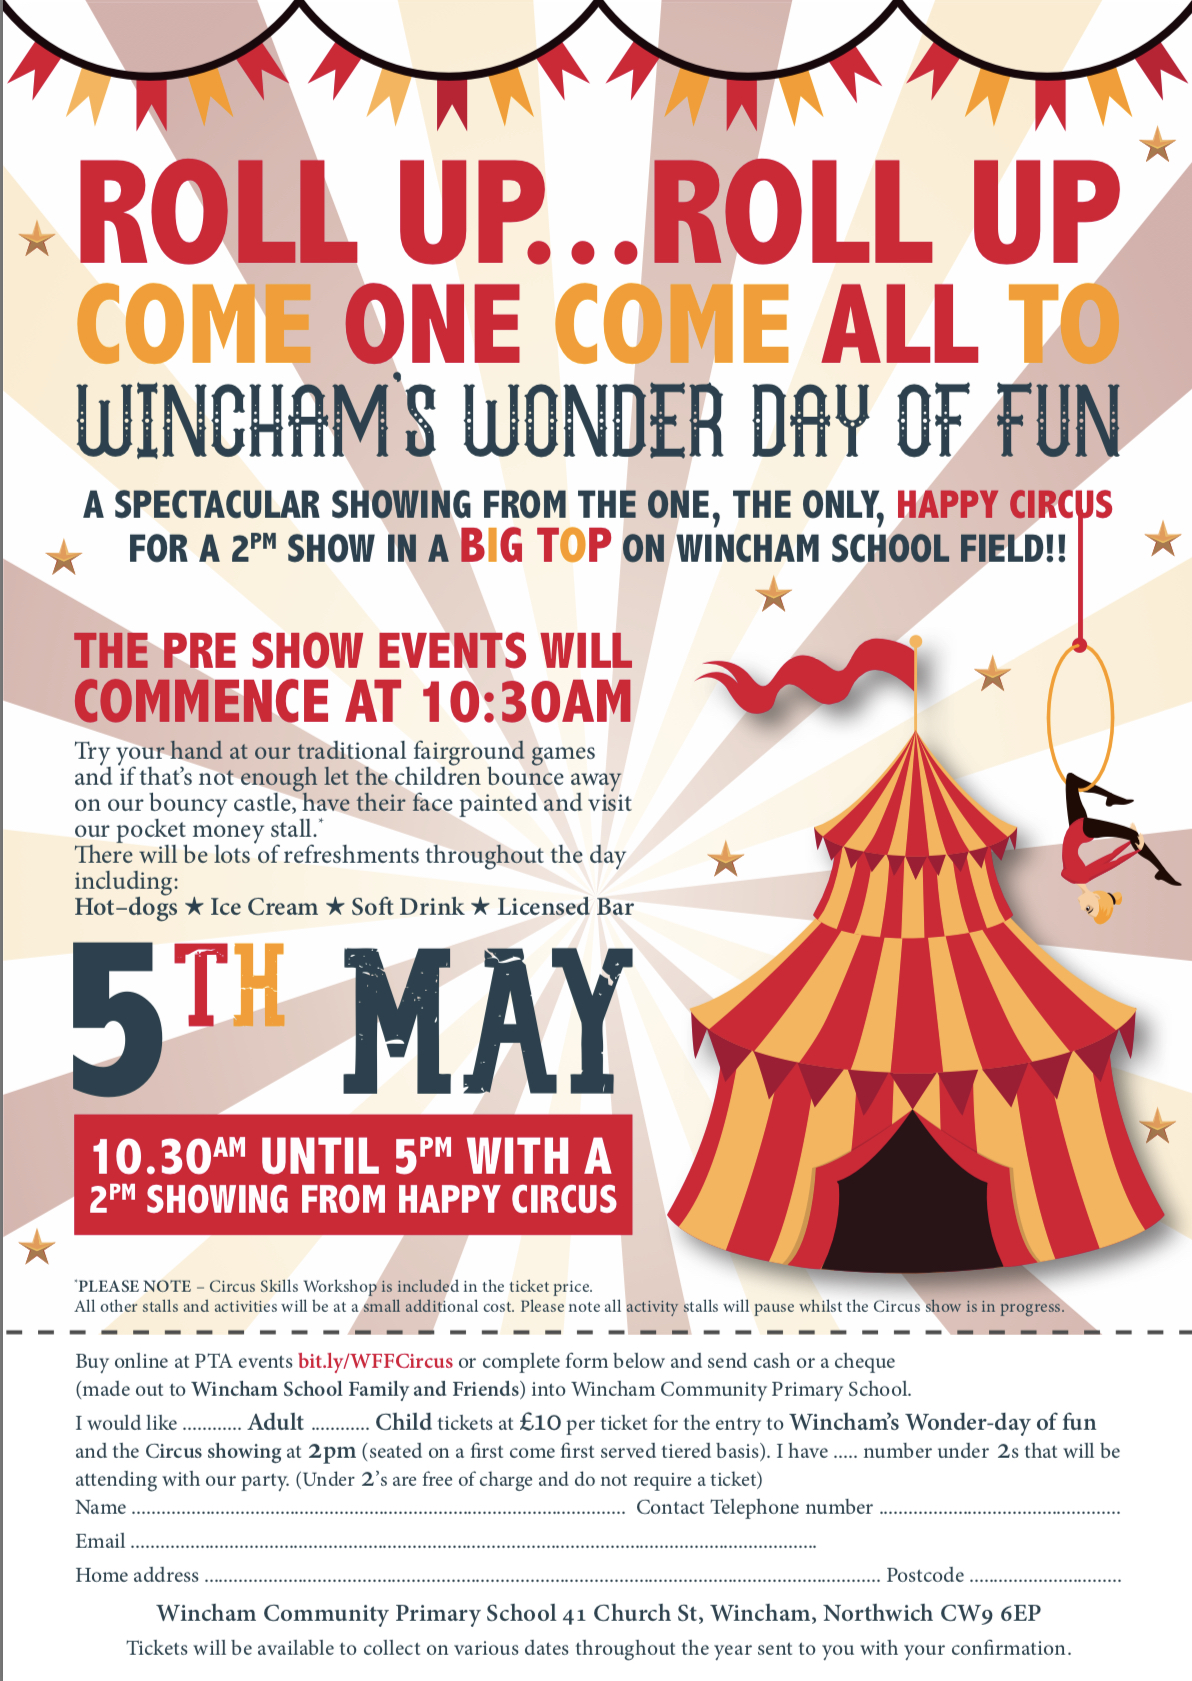 Wincham Wonder Day of Fun (Happy Circus)